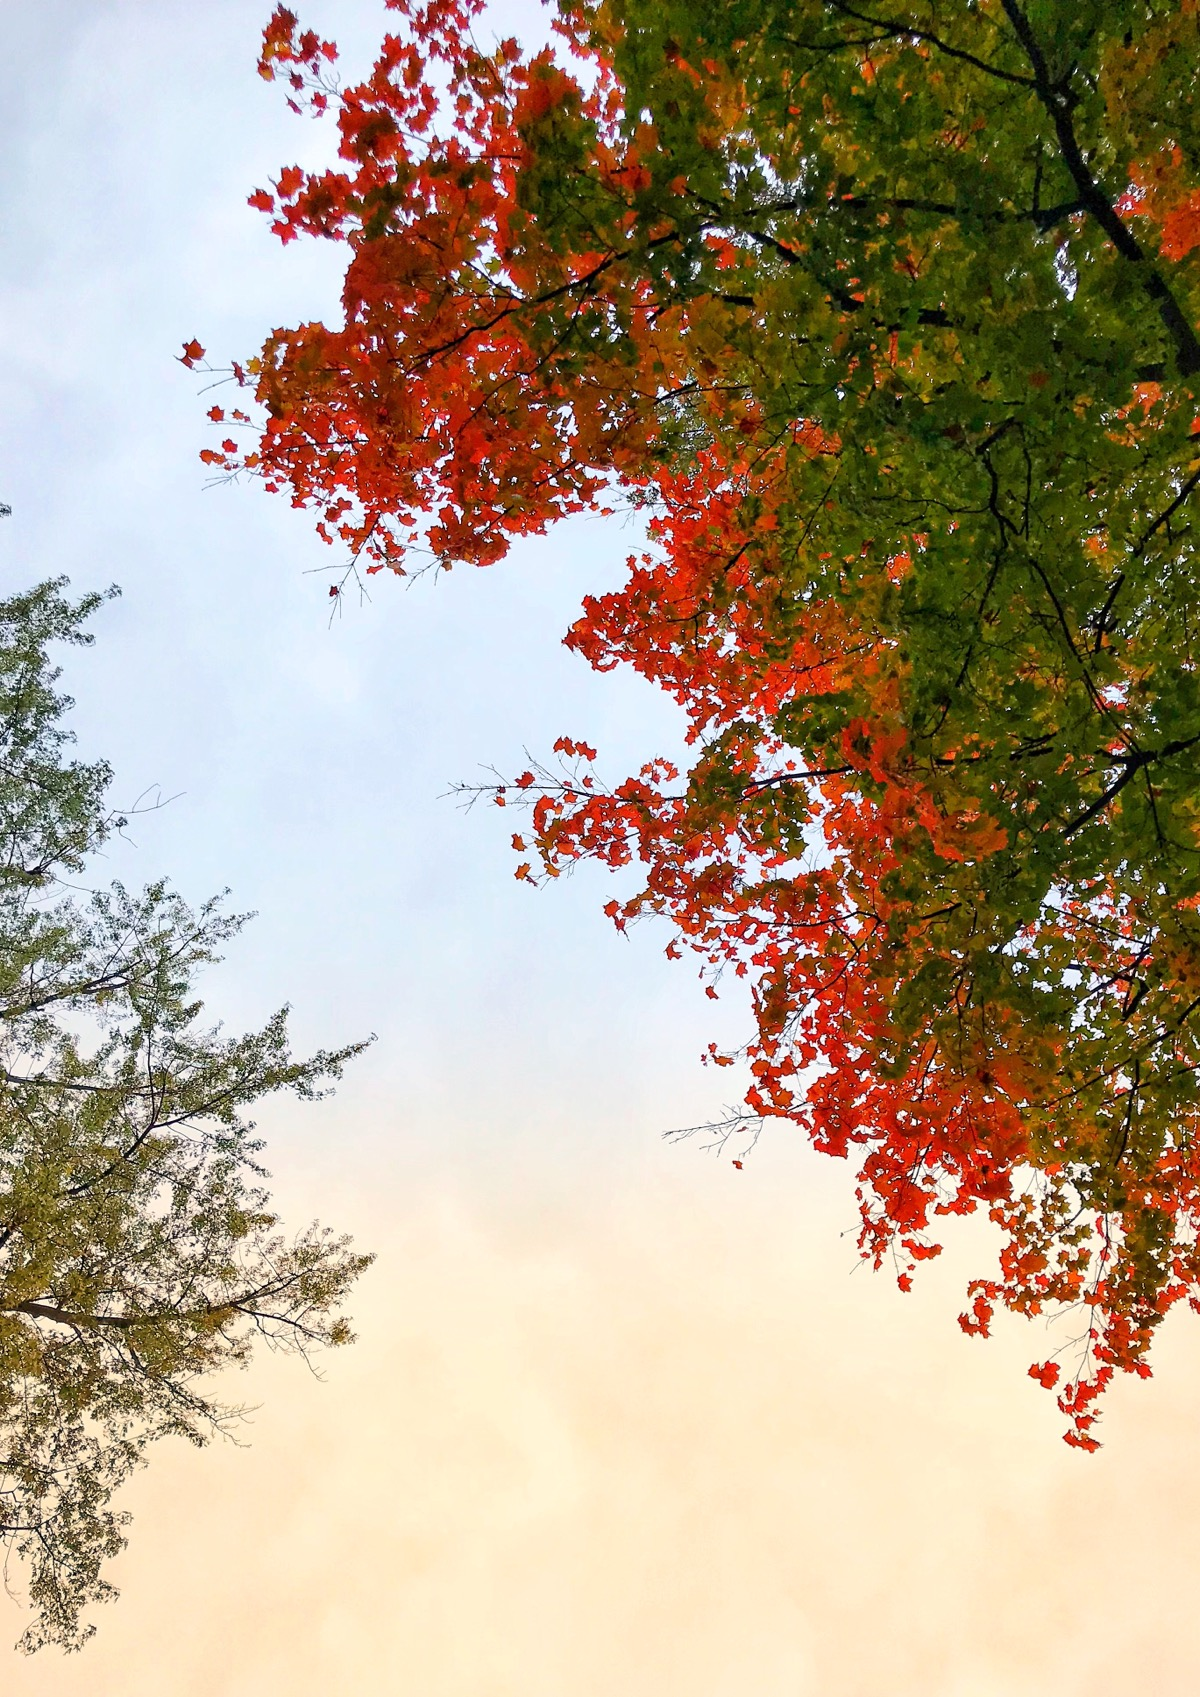 Red leaves on tree against the sky